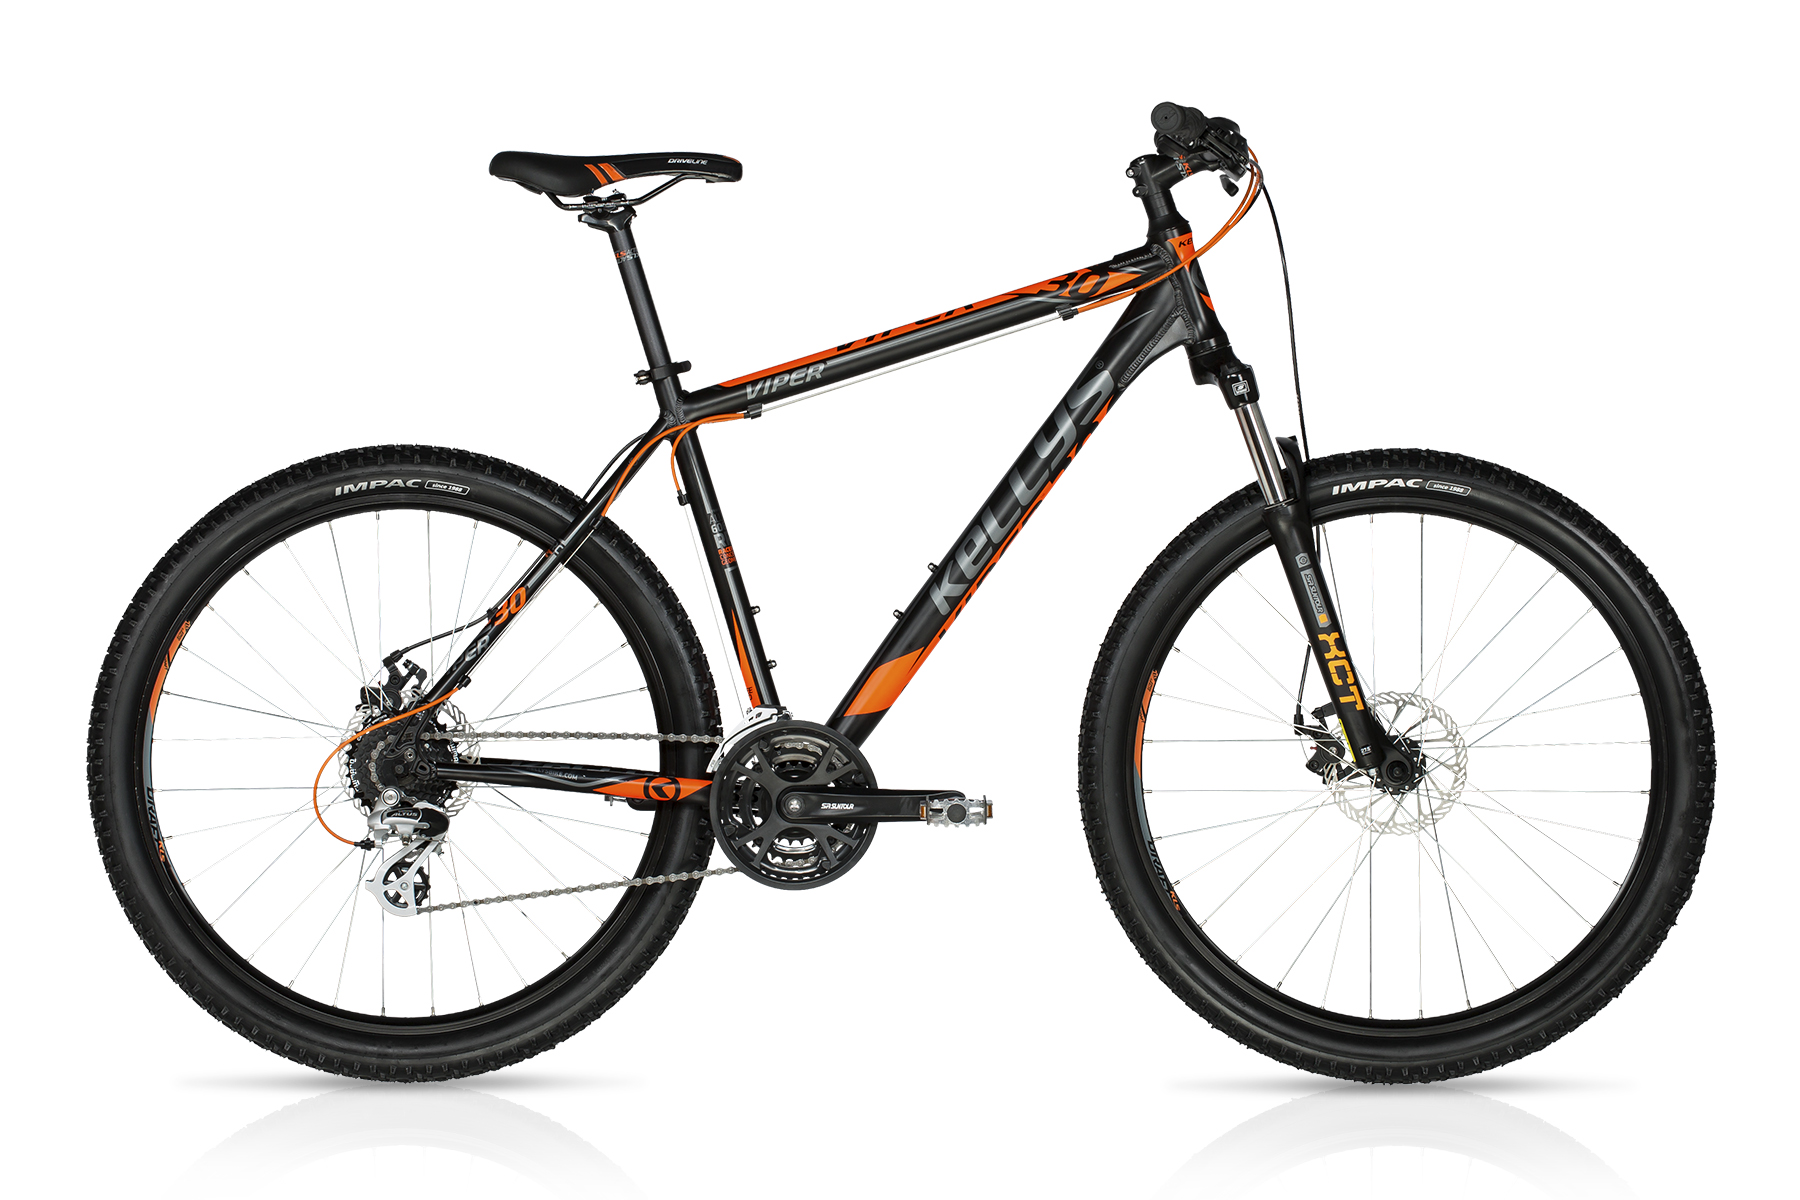 K18050 KELLYS Viper 30 Black Orange 27.5 19.5´´ - Fahrrad Hammer